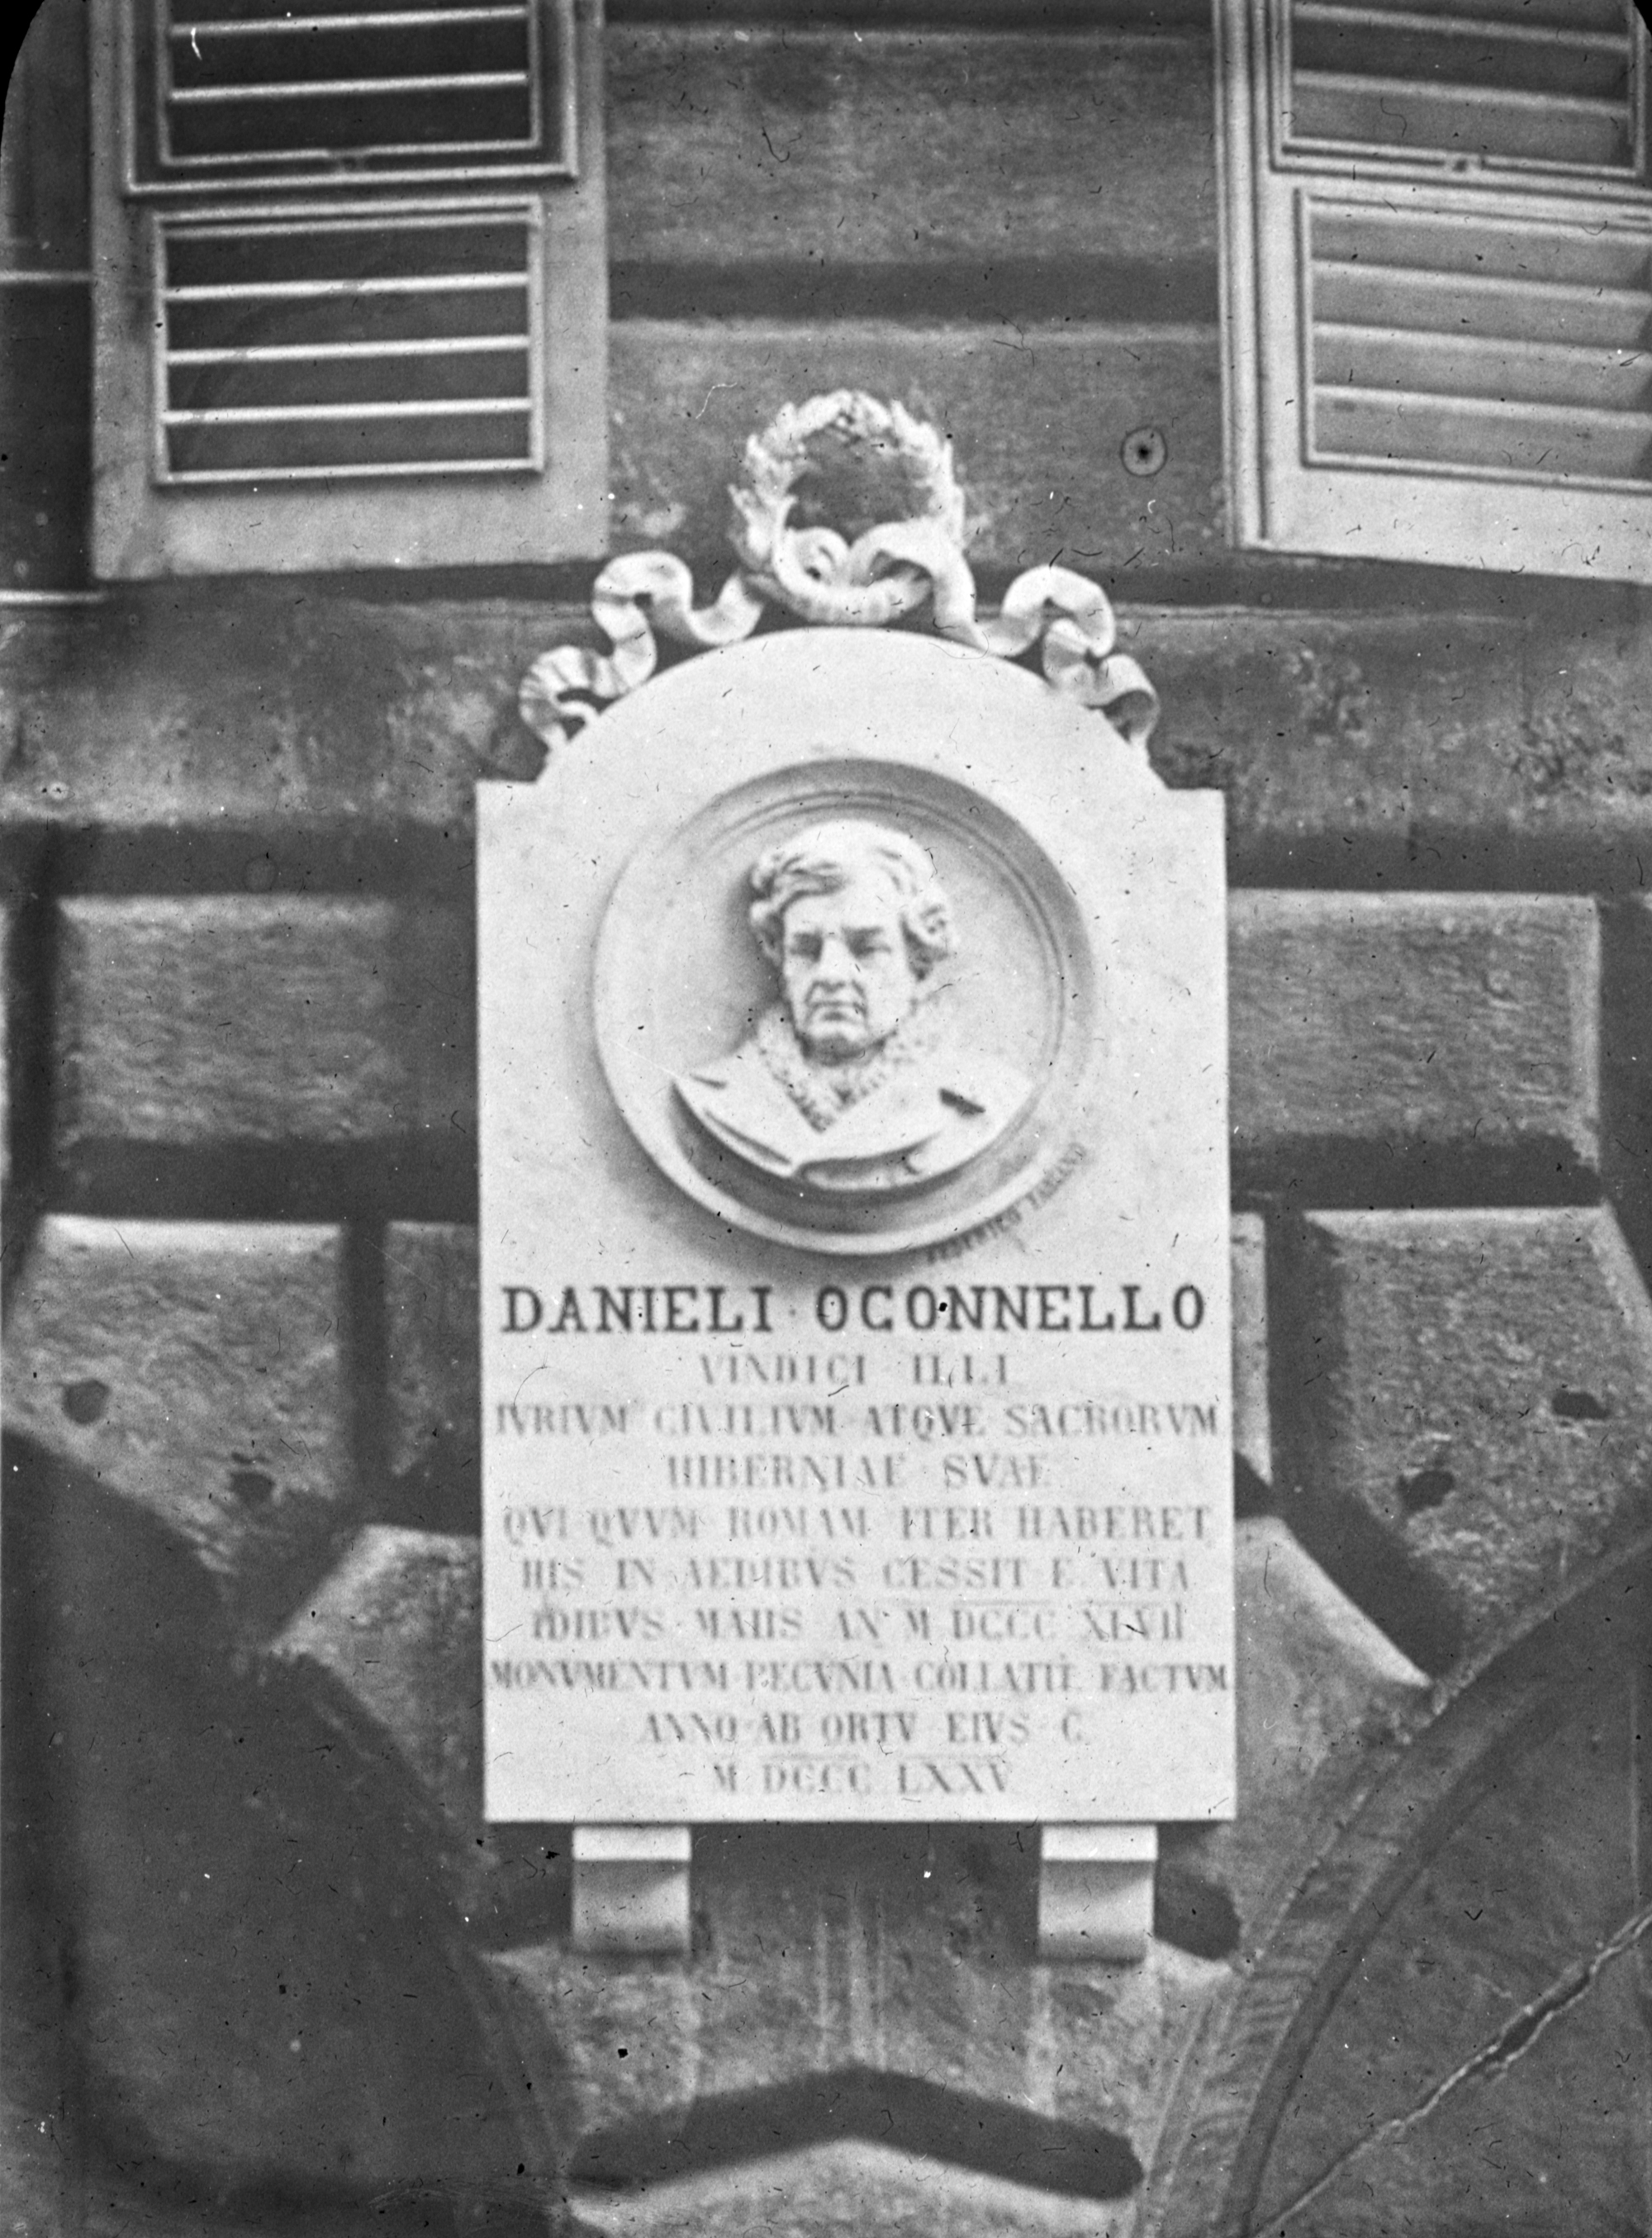 O'Connell monument, Genoa not Geneva.